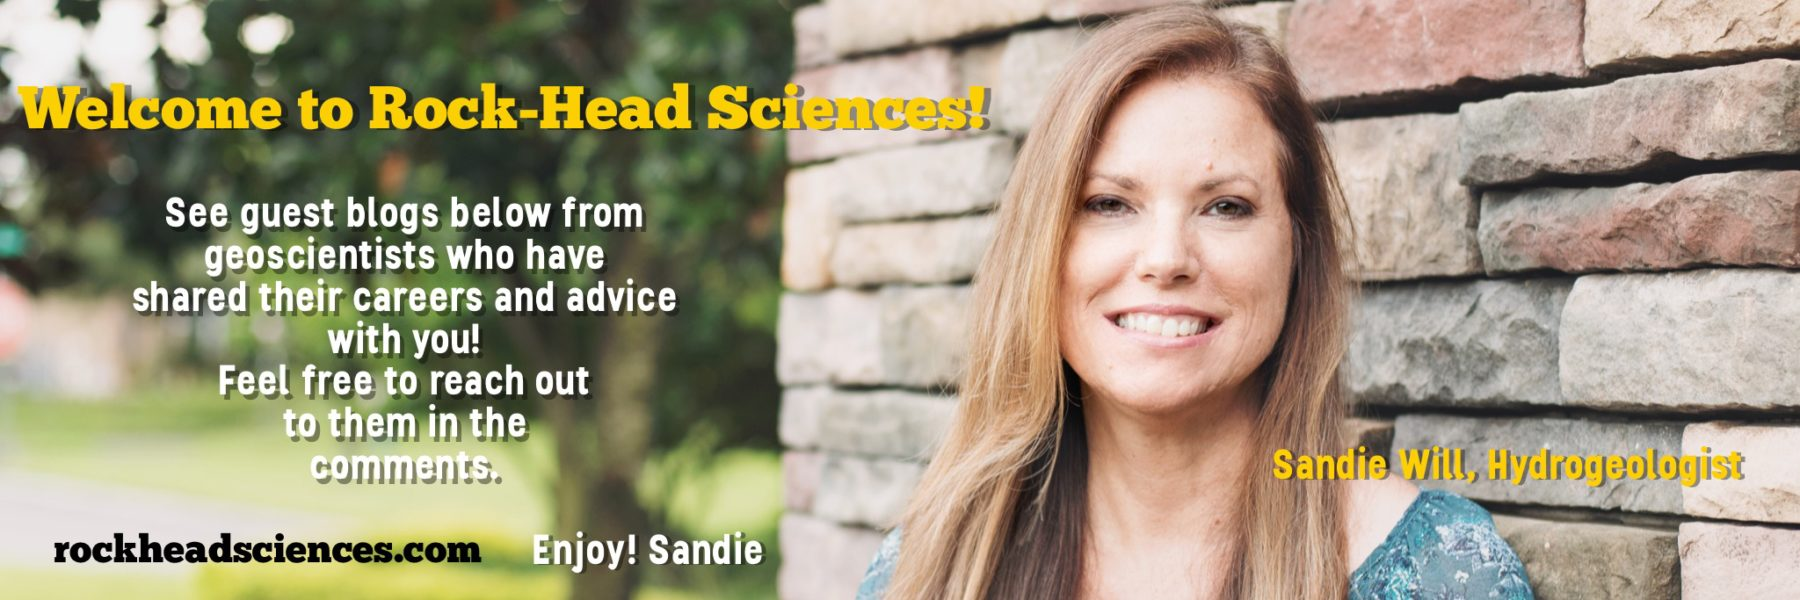 Rock-Head Sciences